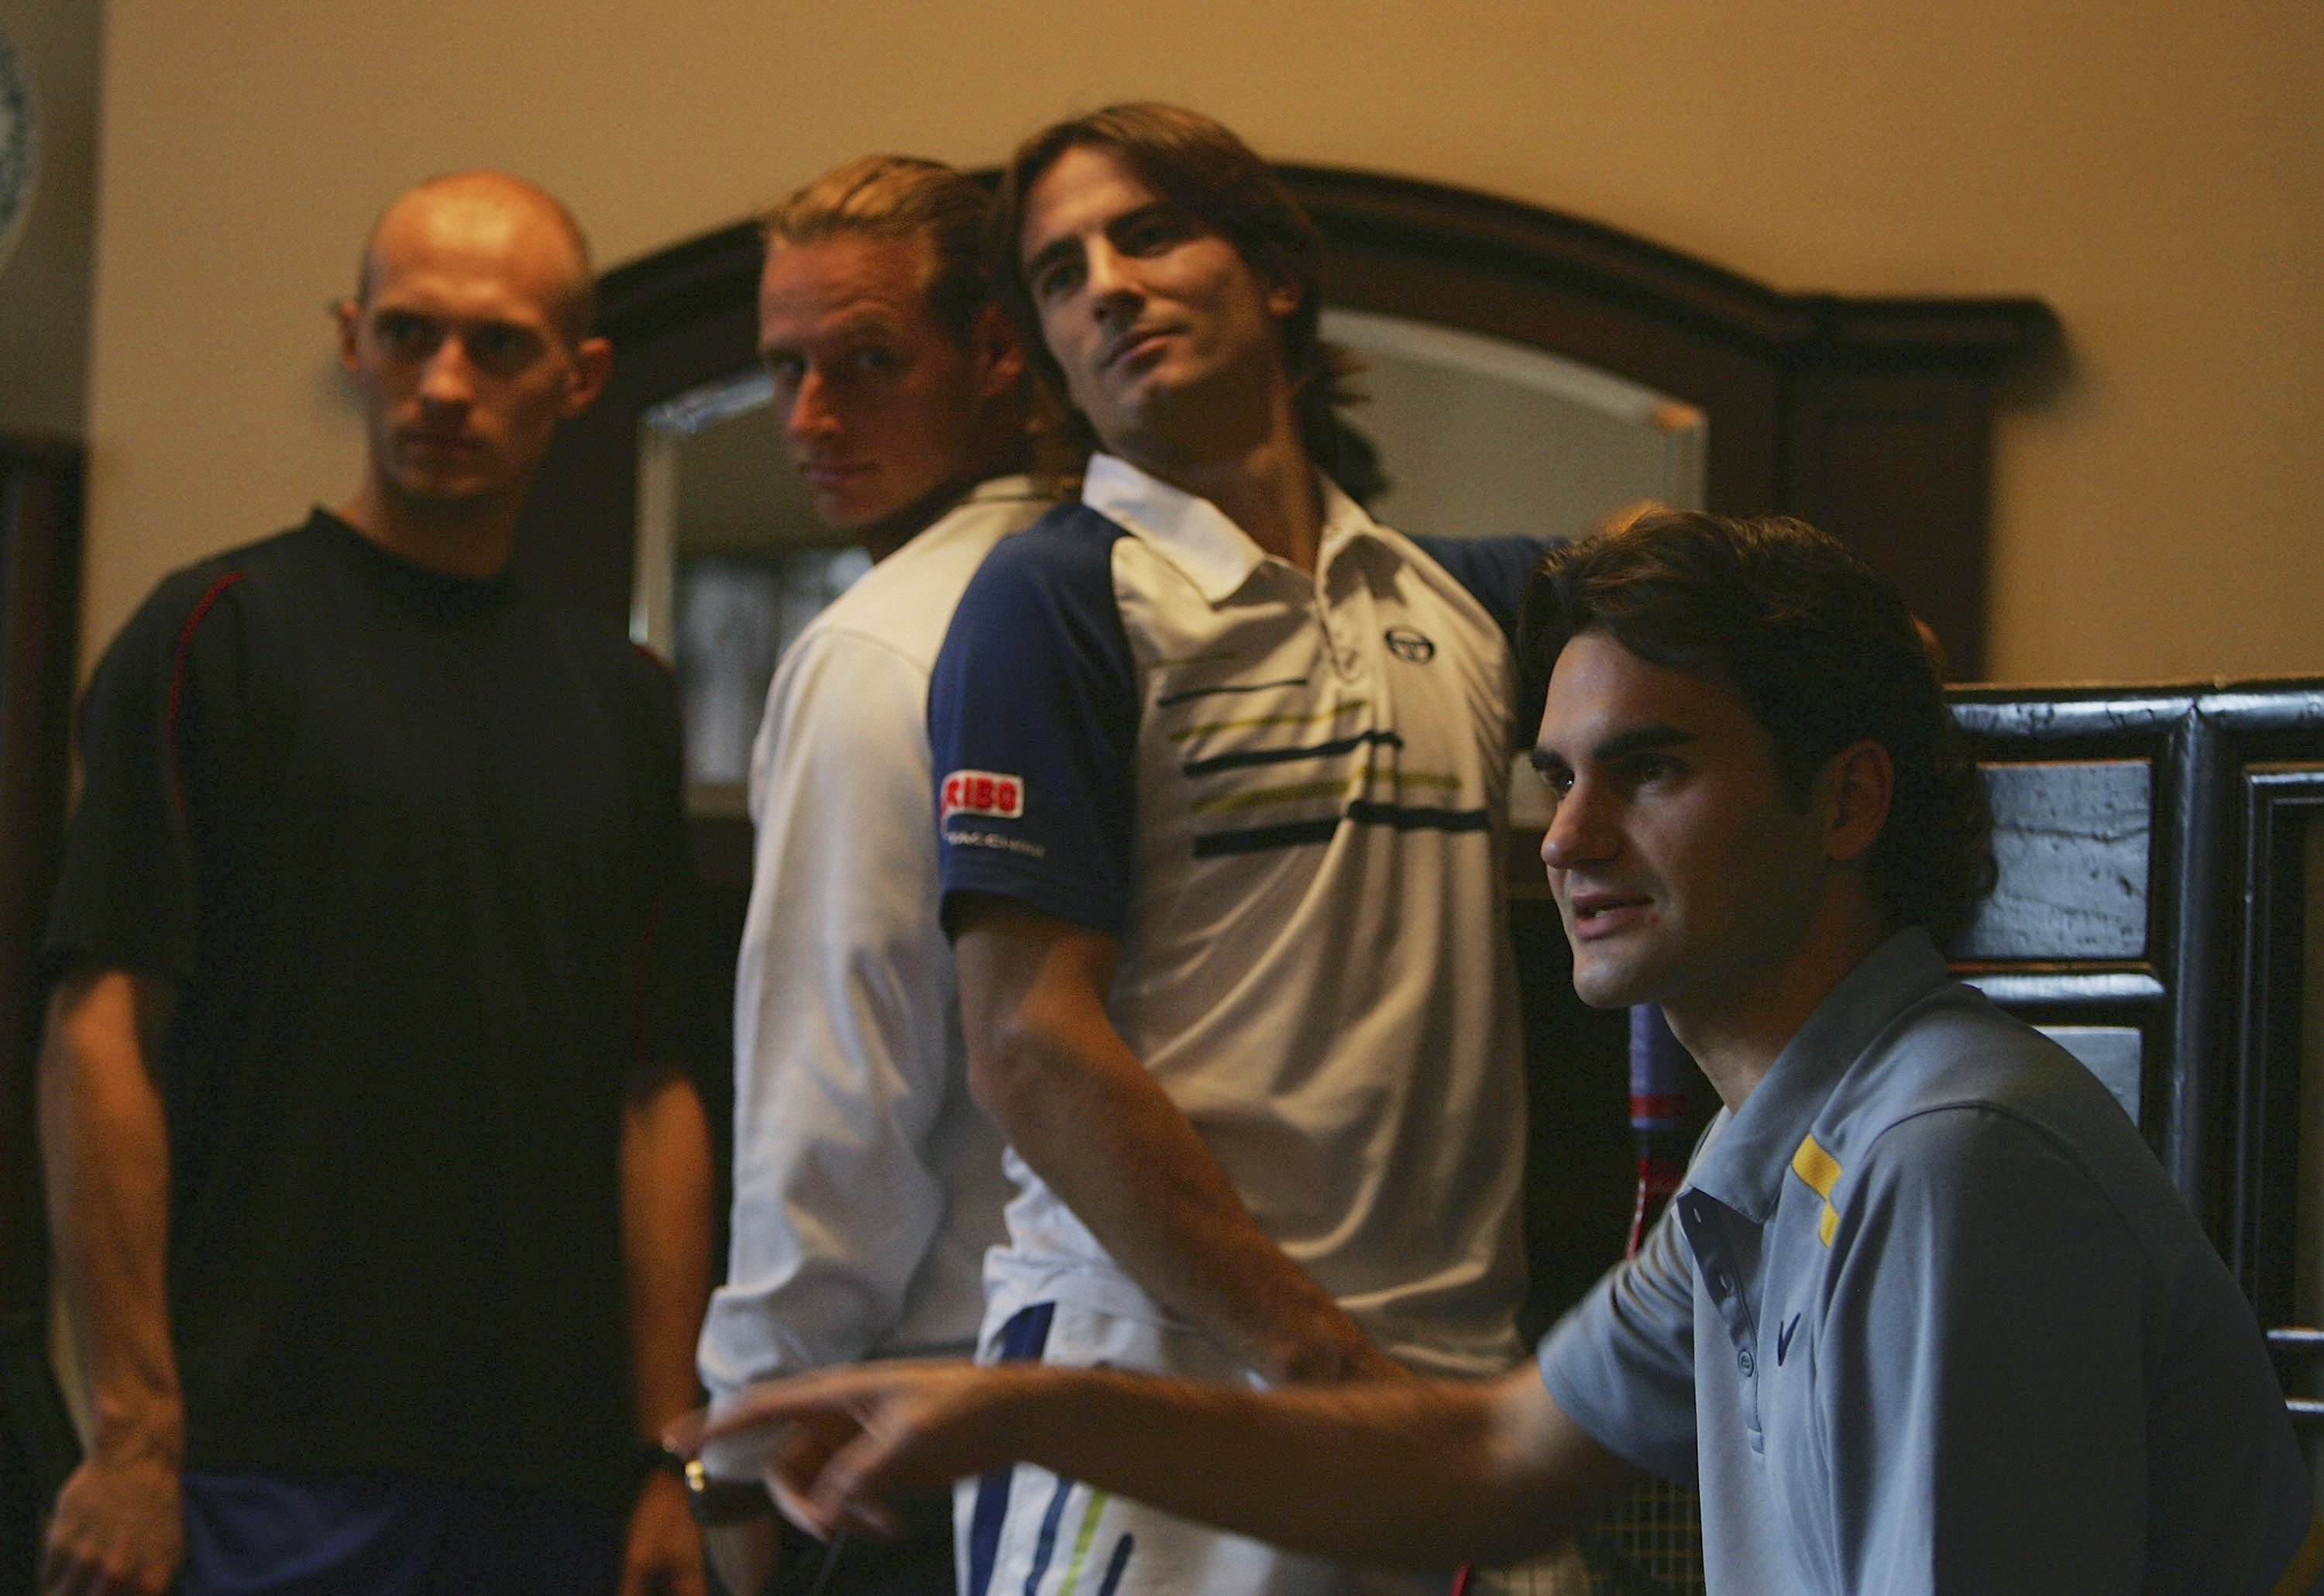 Davydenko, Nalbandian, Robredo and Federer pose for more photos.